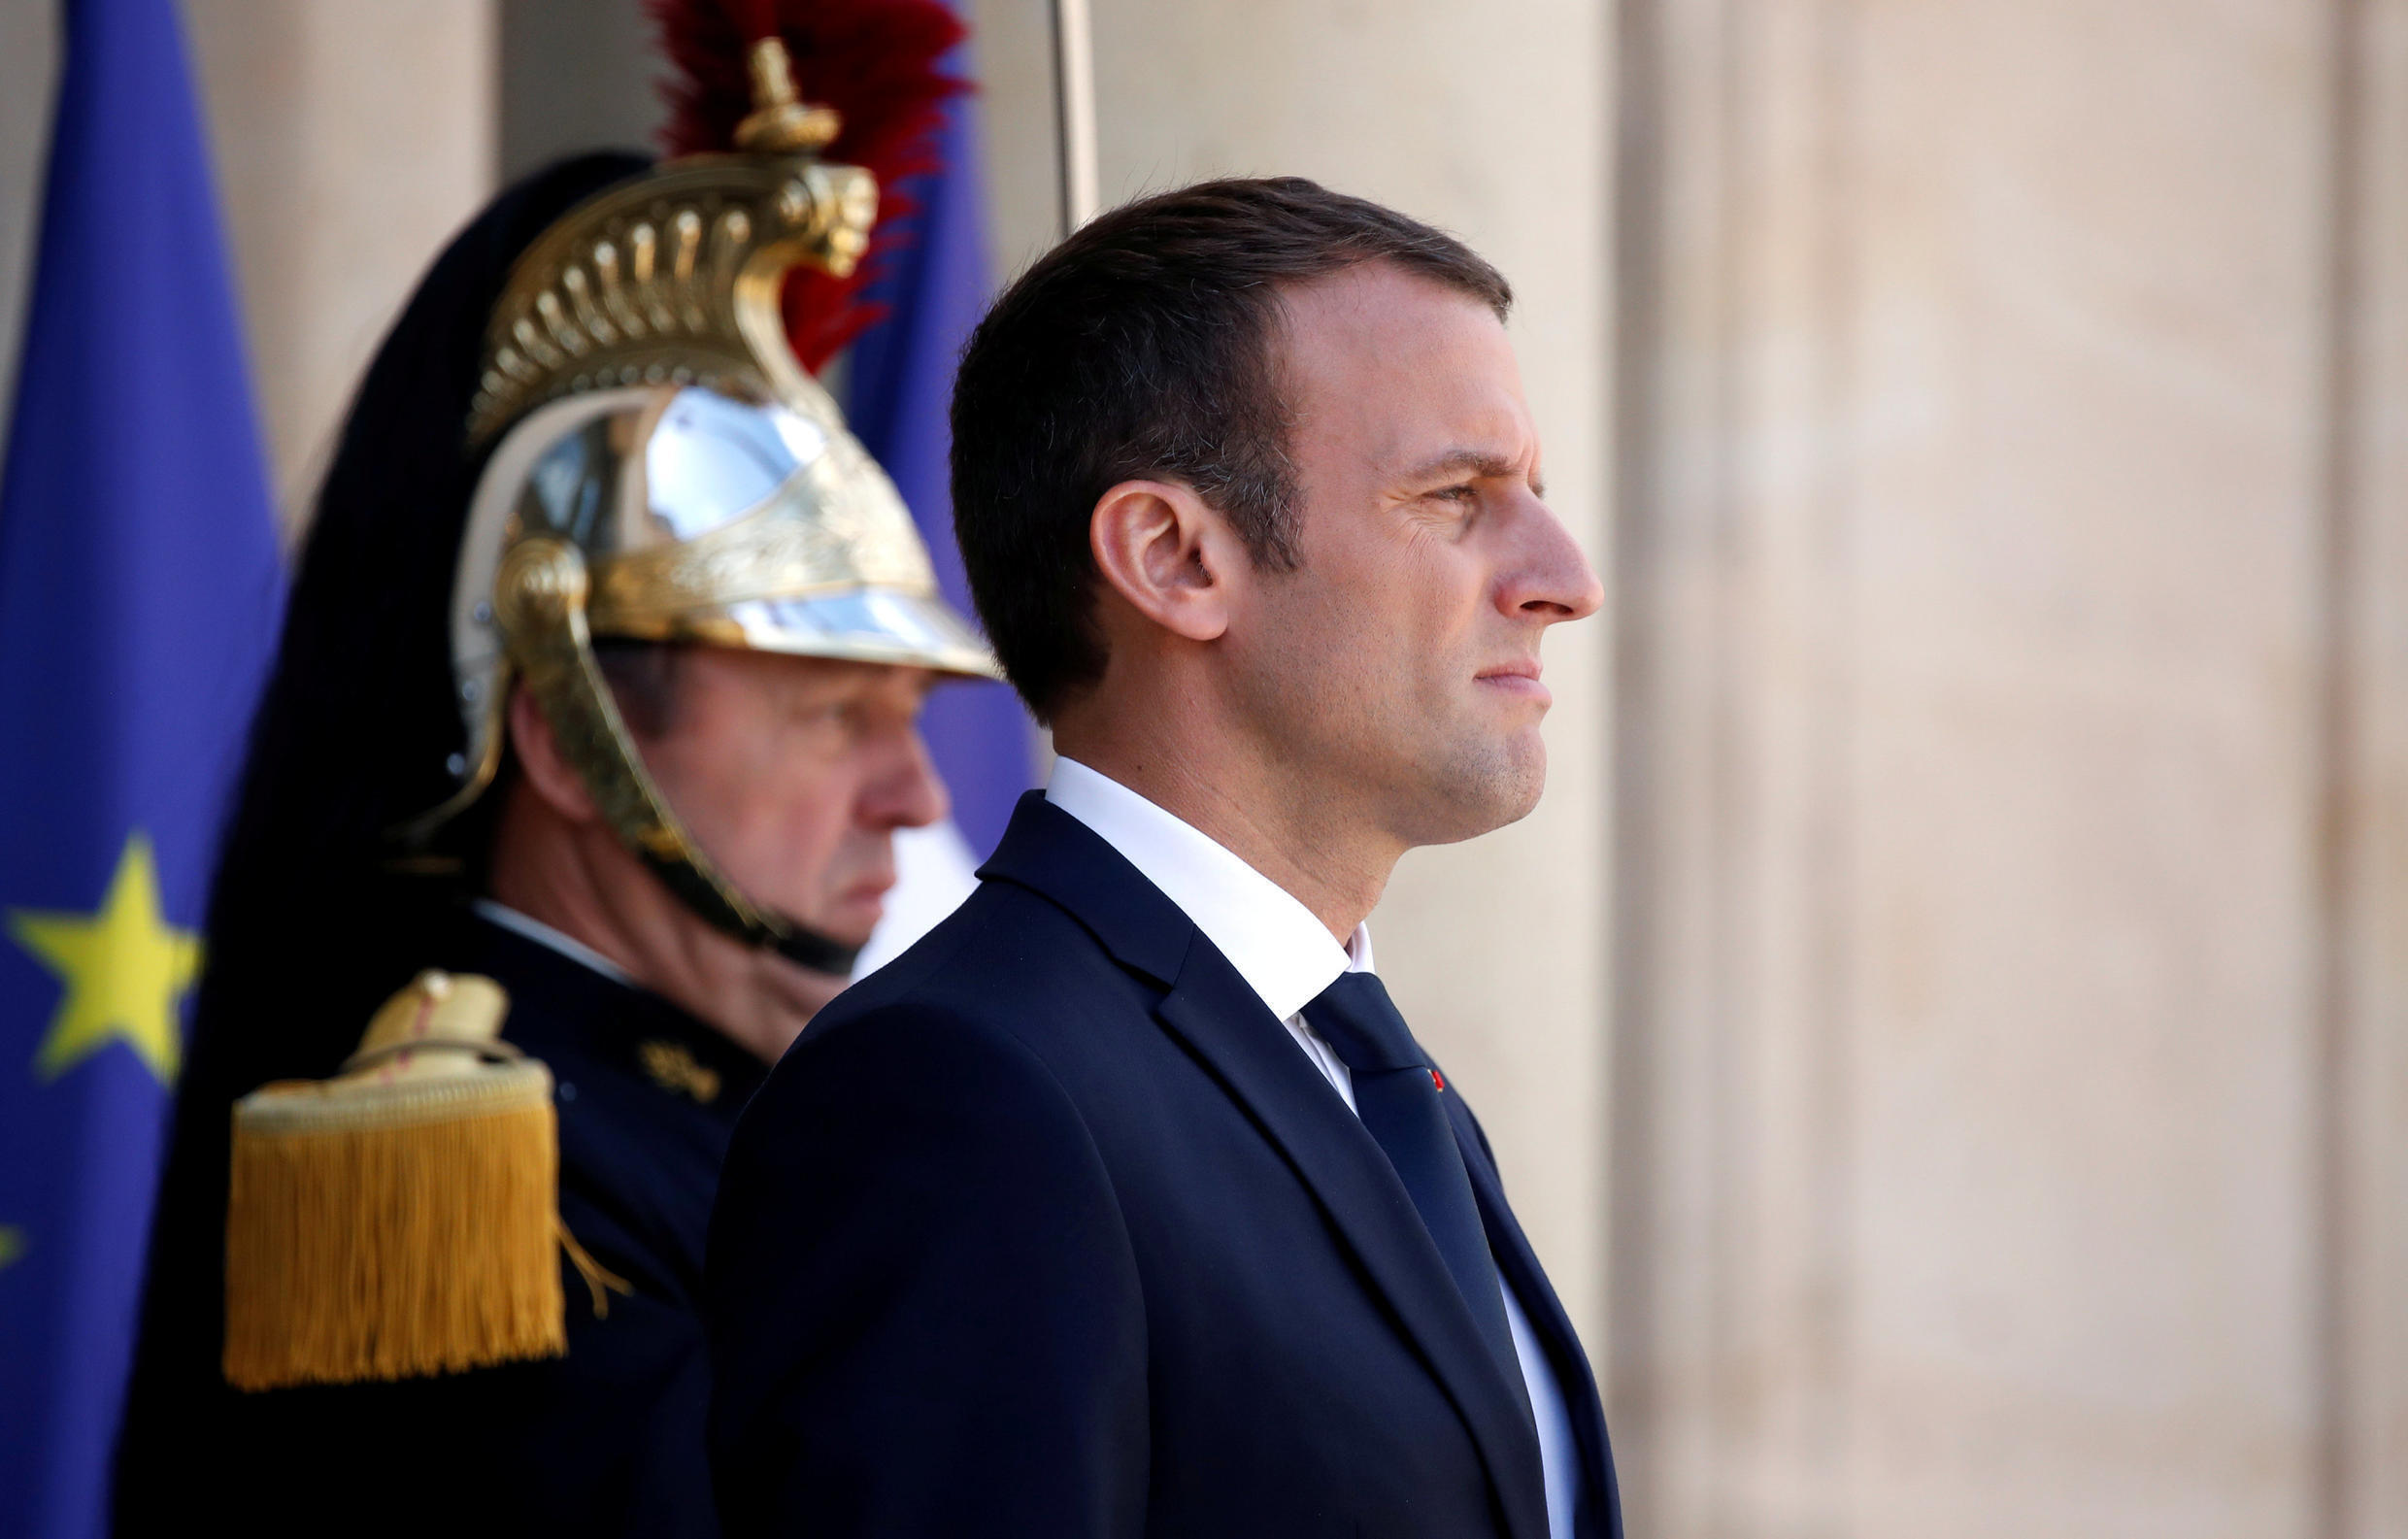 French President Emmanuel Macron stands on the steps of the Elysee Palace in Paris, France, June 16, 2017.